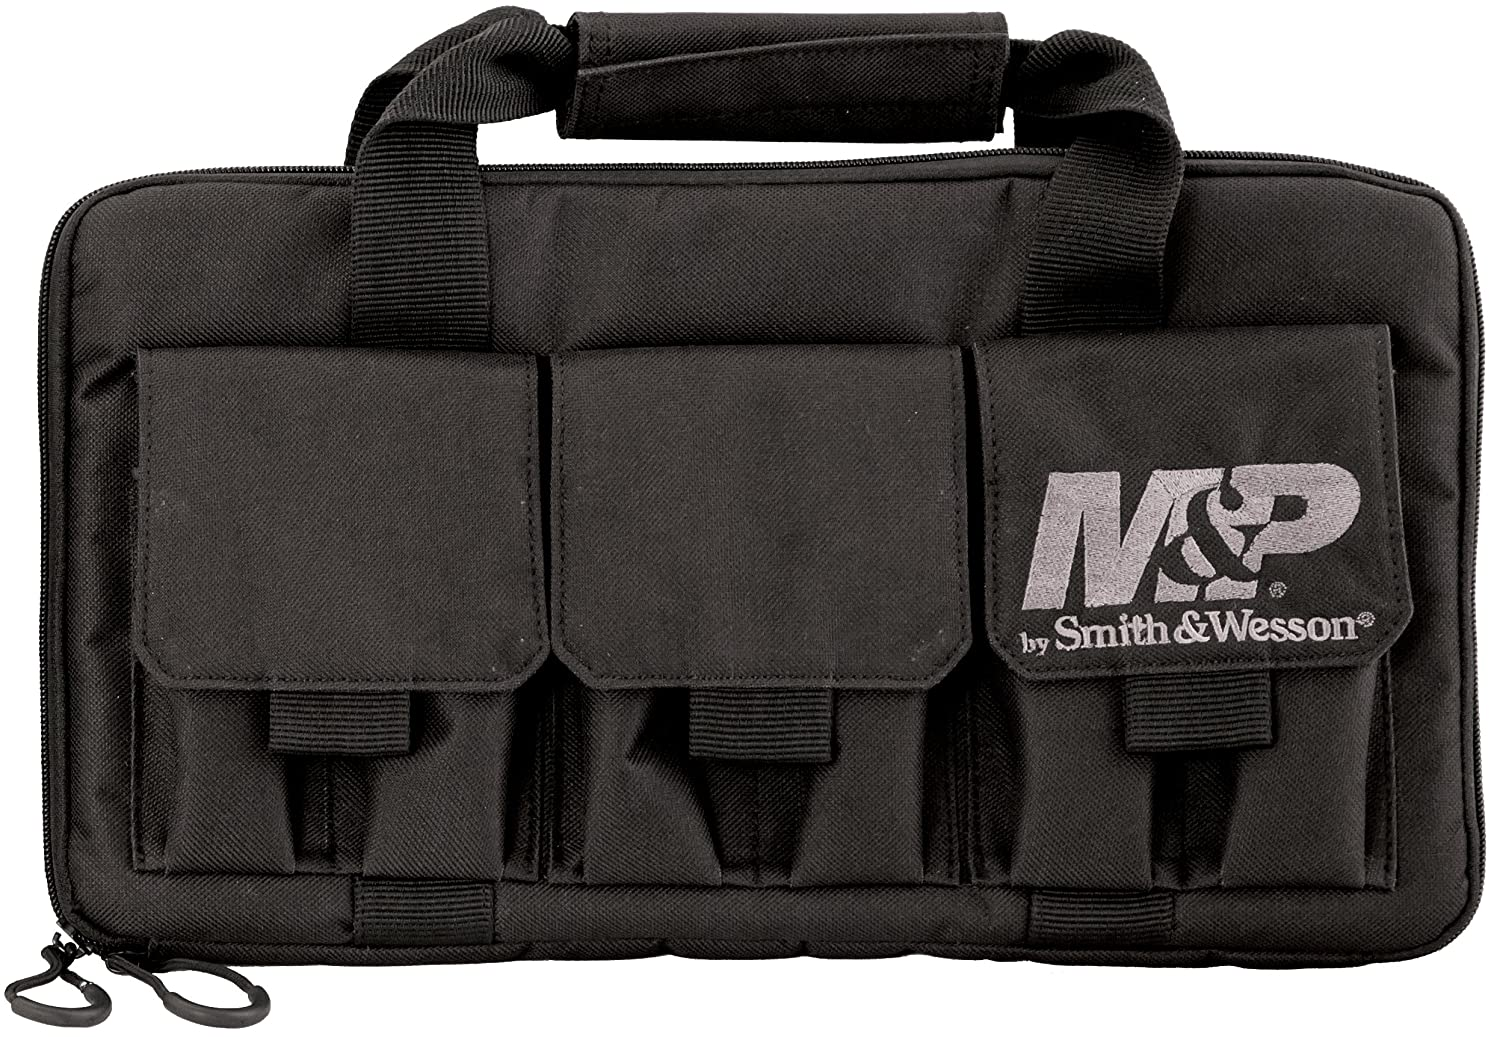 9. Smith & Wesson M&P by Pro Tac Double Handgun Case Padded Pistol Bag for Hunting Shooting Range Sport